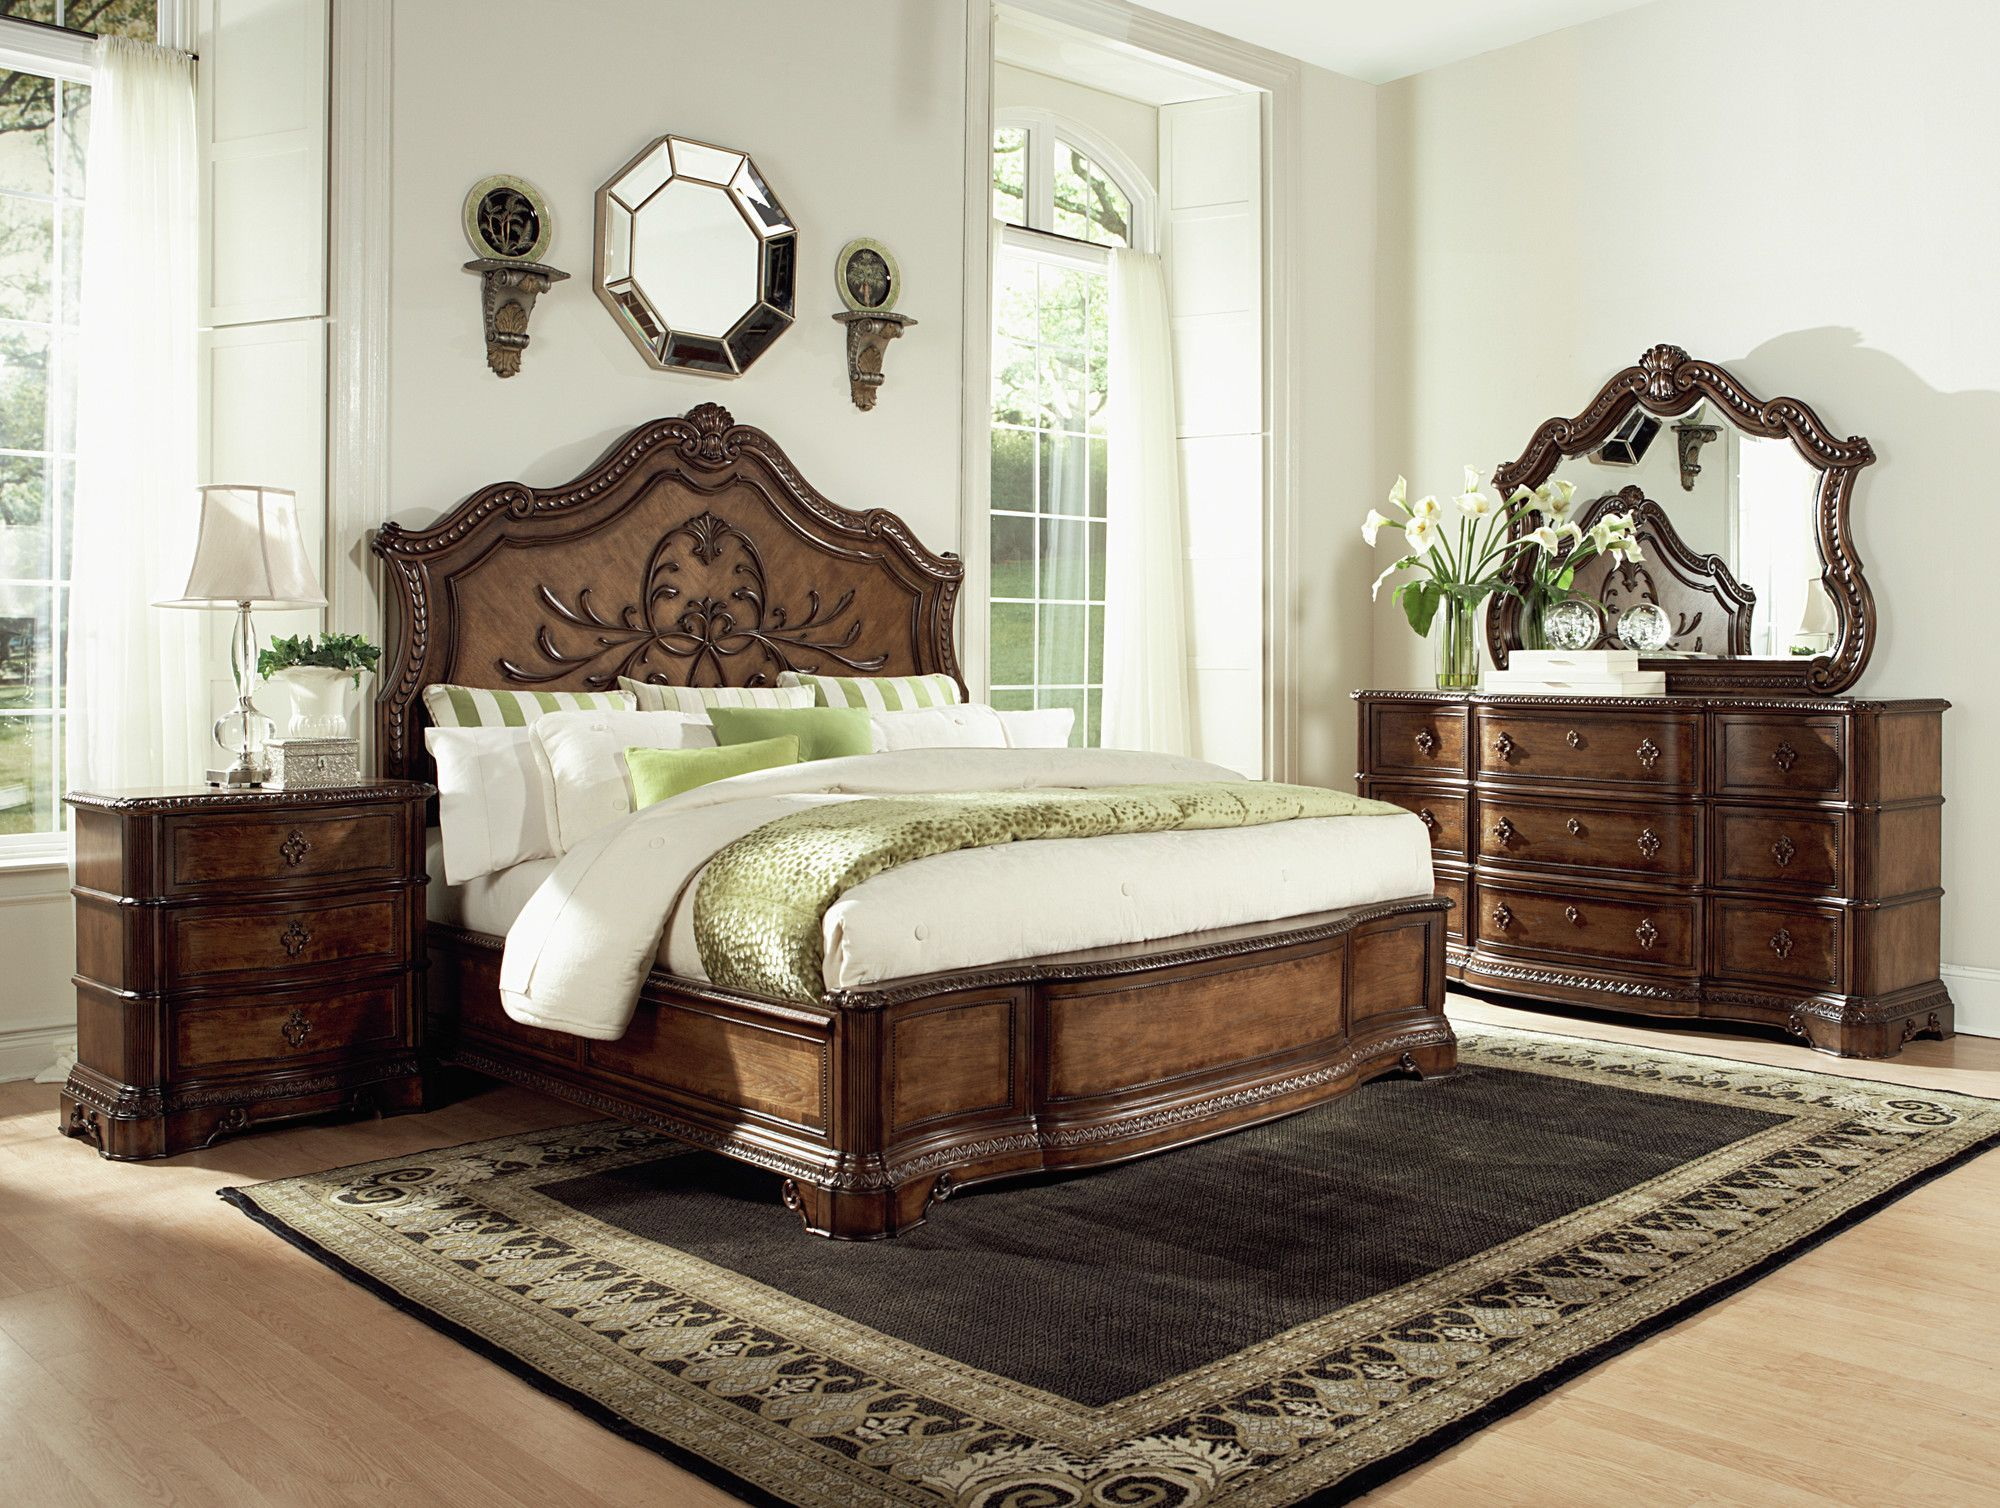 Antique Bedroom Designs Pemberleigh Panel Bed  Products  Pinterest  Products